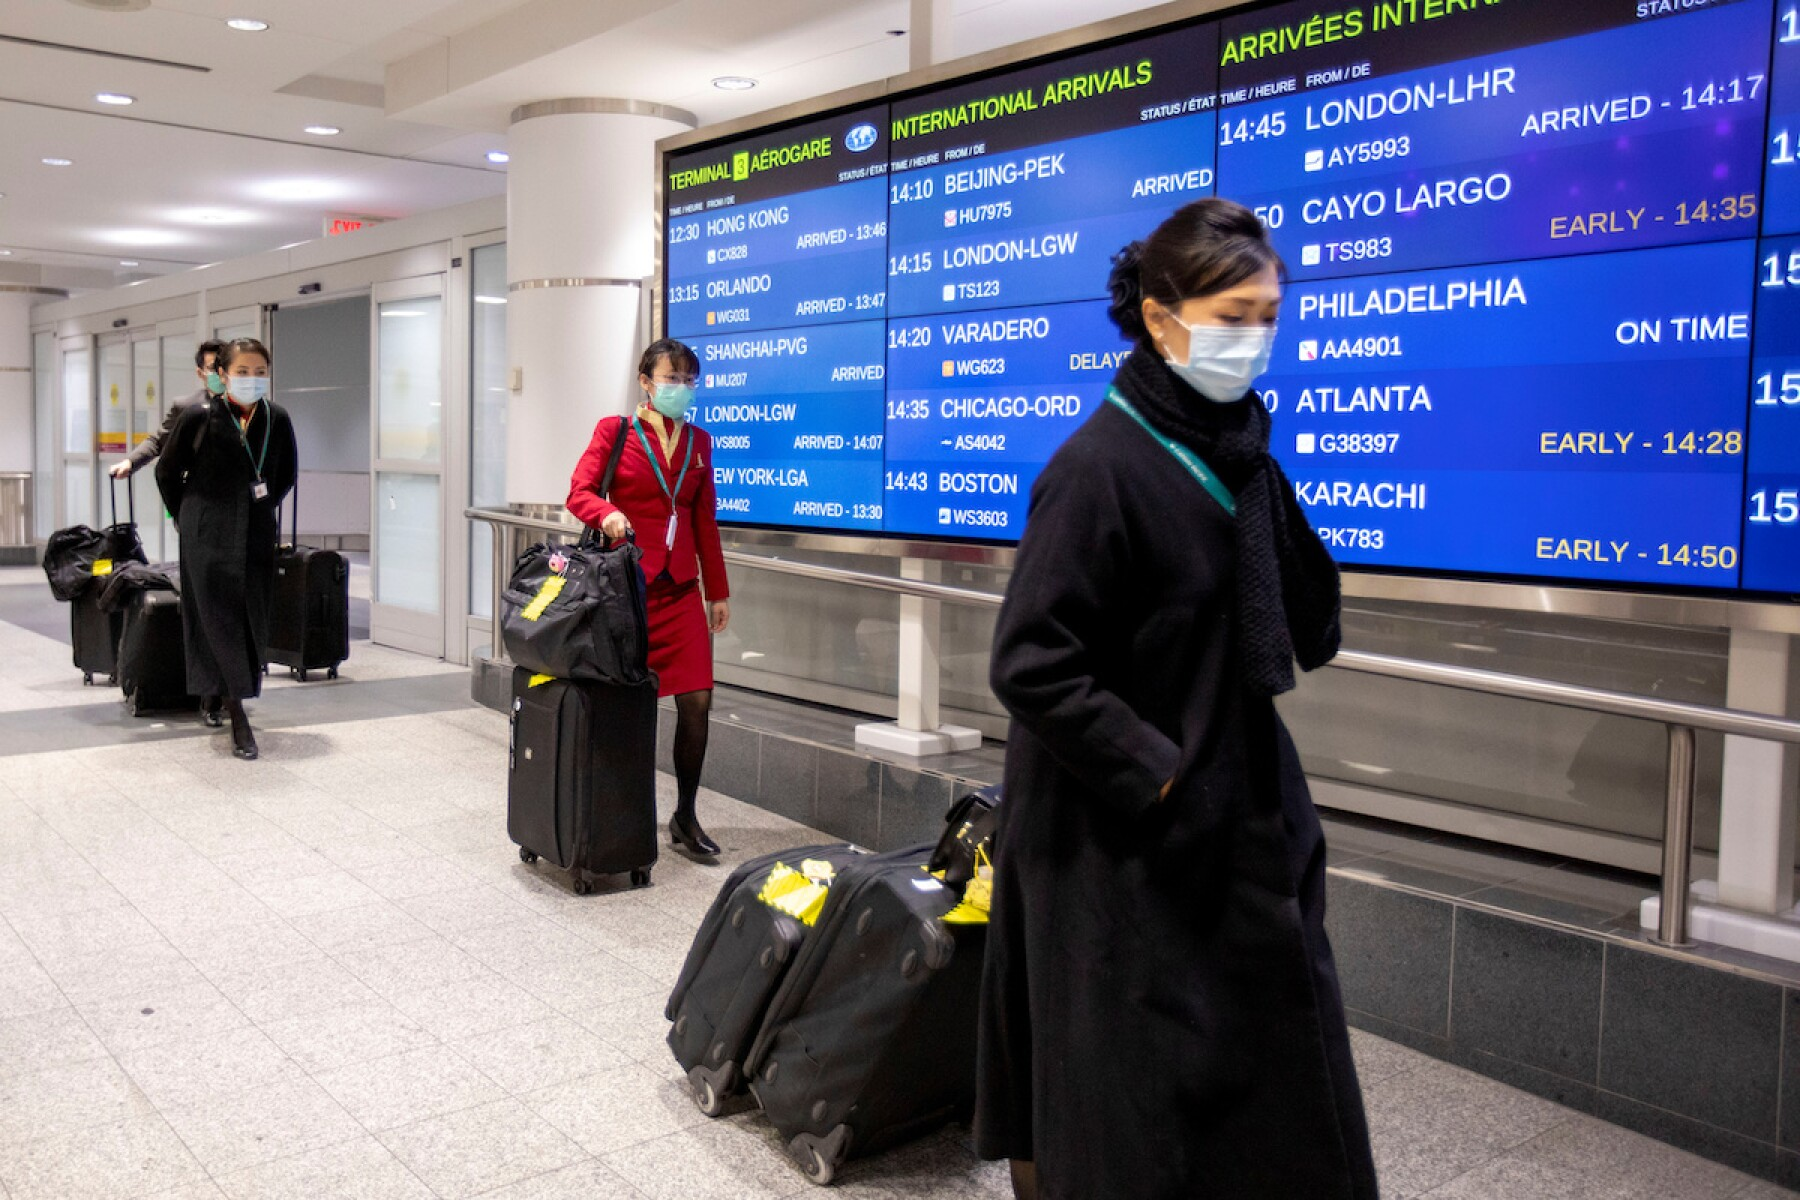 Flight crew members wear masks as they arrive at Pearson airport in Toronto